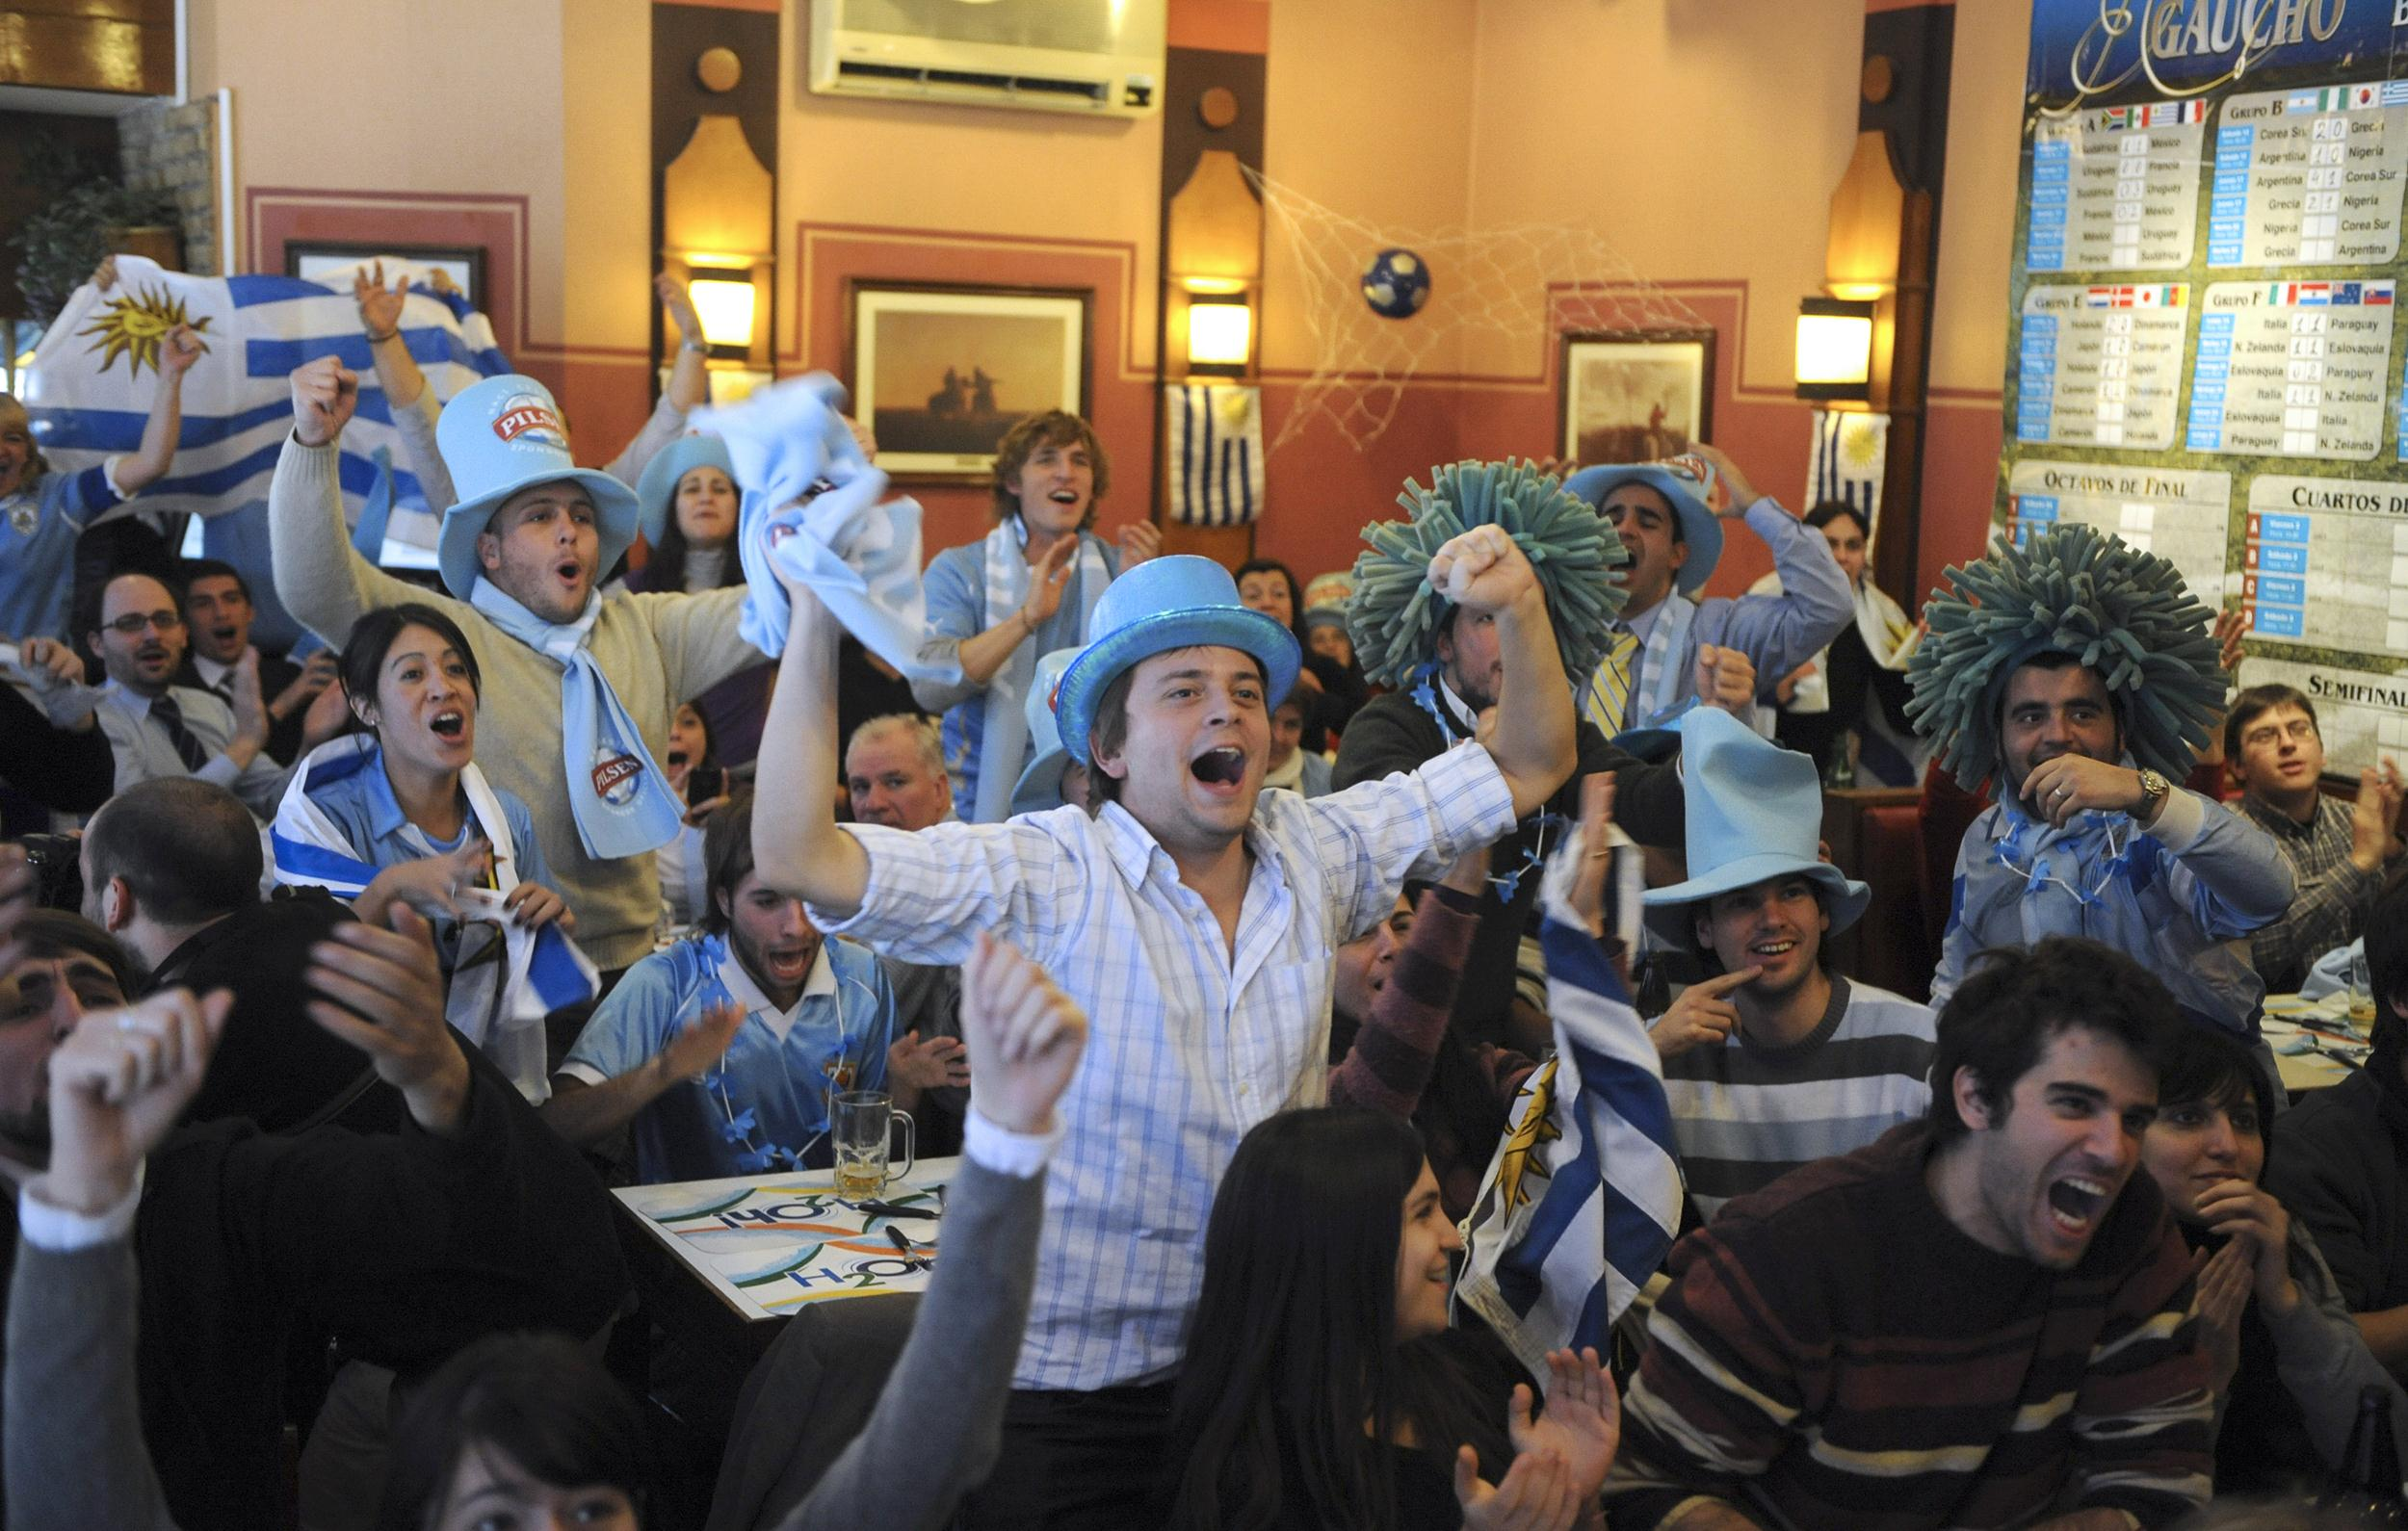 Image: Uruguayan football fans celebrate the first goal of their team in the FIFA World Cup 2010 match against Mexico, at a bar in downtown Montevideo